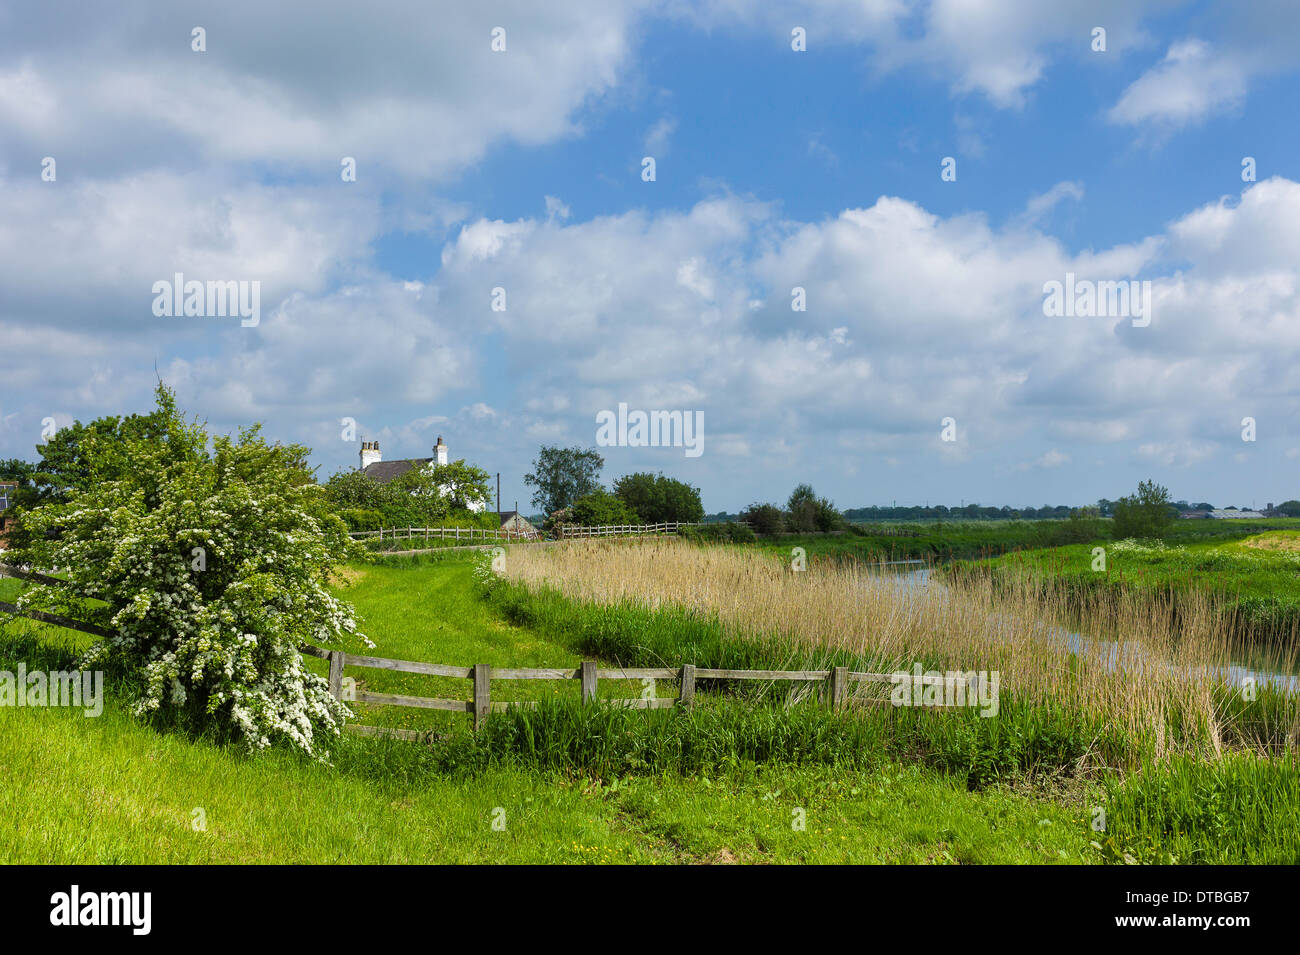 The river Hull on a fine spring morning showing the raised river bank lined with grasses, reeds, and hawthorn tree in bloom. - Stock Image